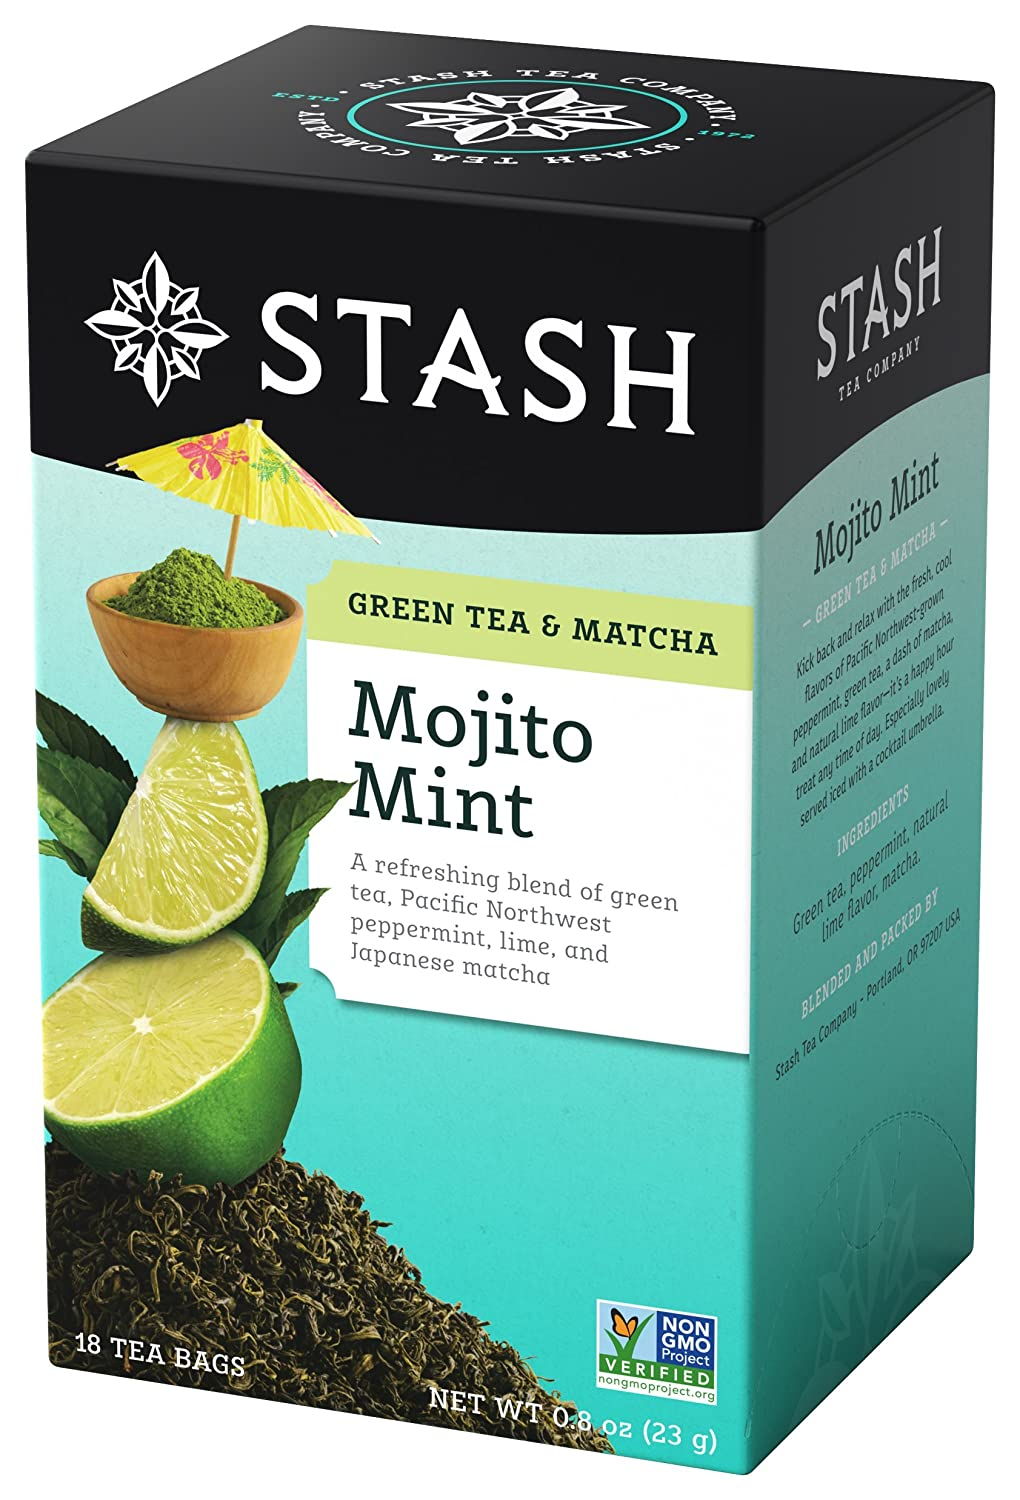 Stash Tea Mojito Mint Green Tea & Matcha Blend 18 Count Tea Bags in Foil (Pack of 6) (Packaging May Vary) Individual Green Tea Bags for Use in Teapots Mugs or Cups, Brew Hot Tea or Iced Tea